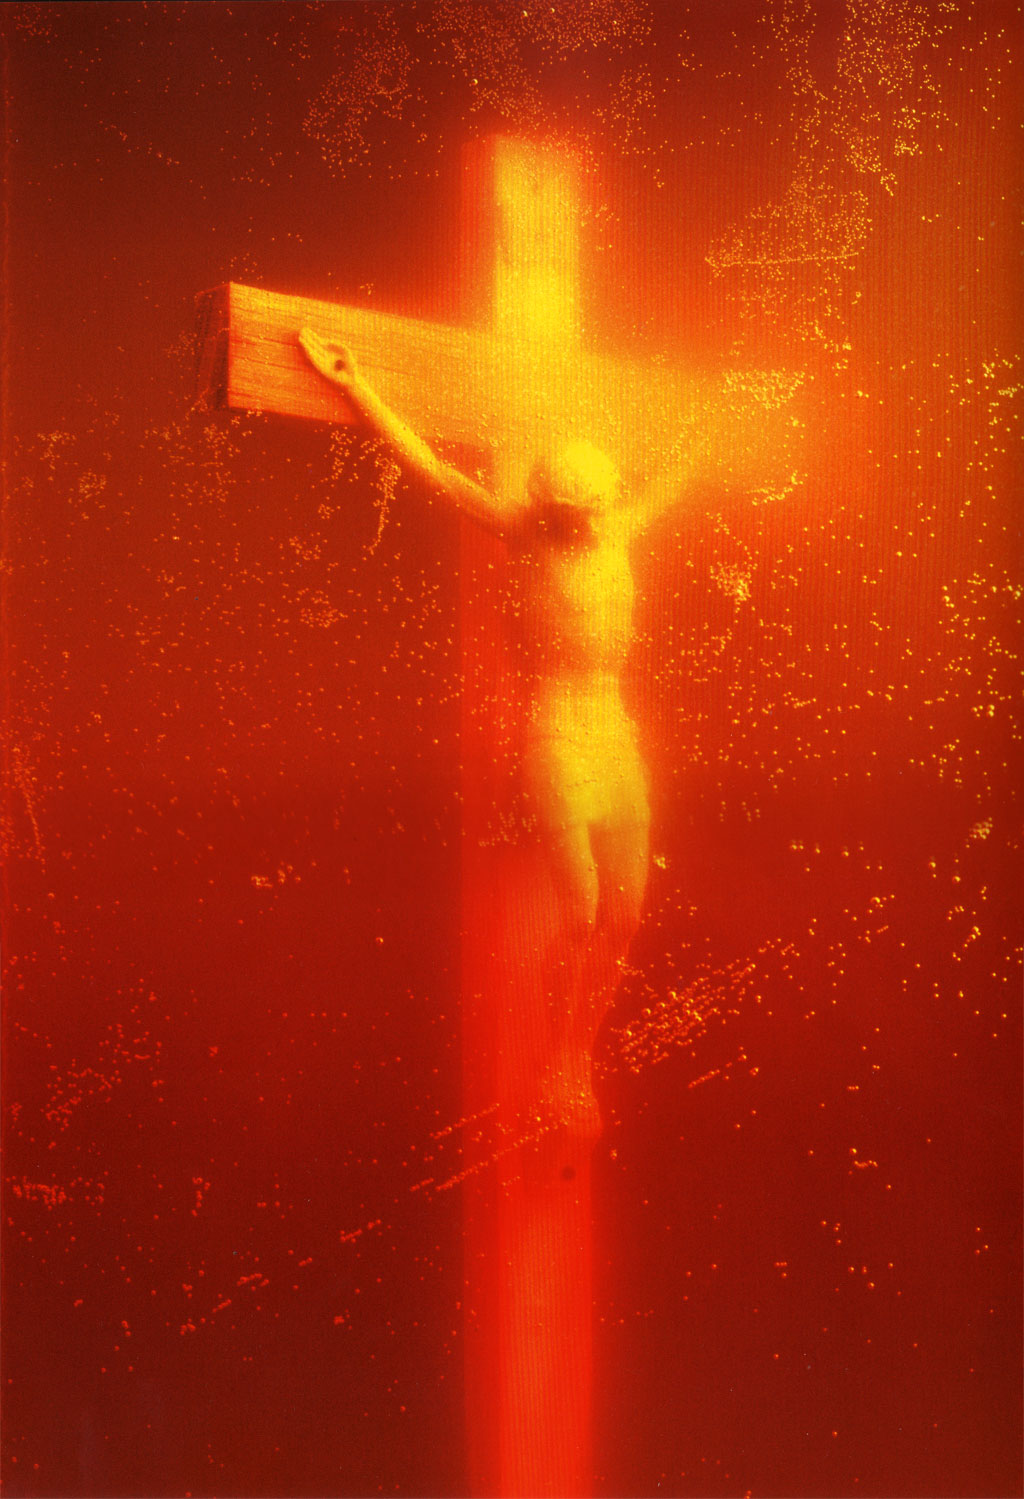 http://obviousmag.org/et_in_arcadia/2015/05/08/Piss_Christ_by_Serrano_Andres_%281987%29.jpg